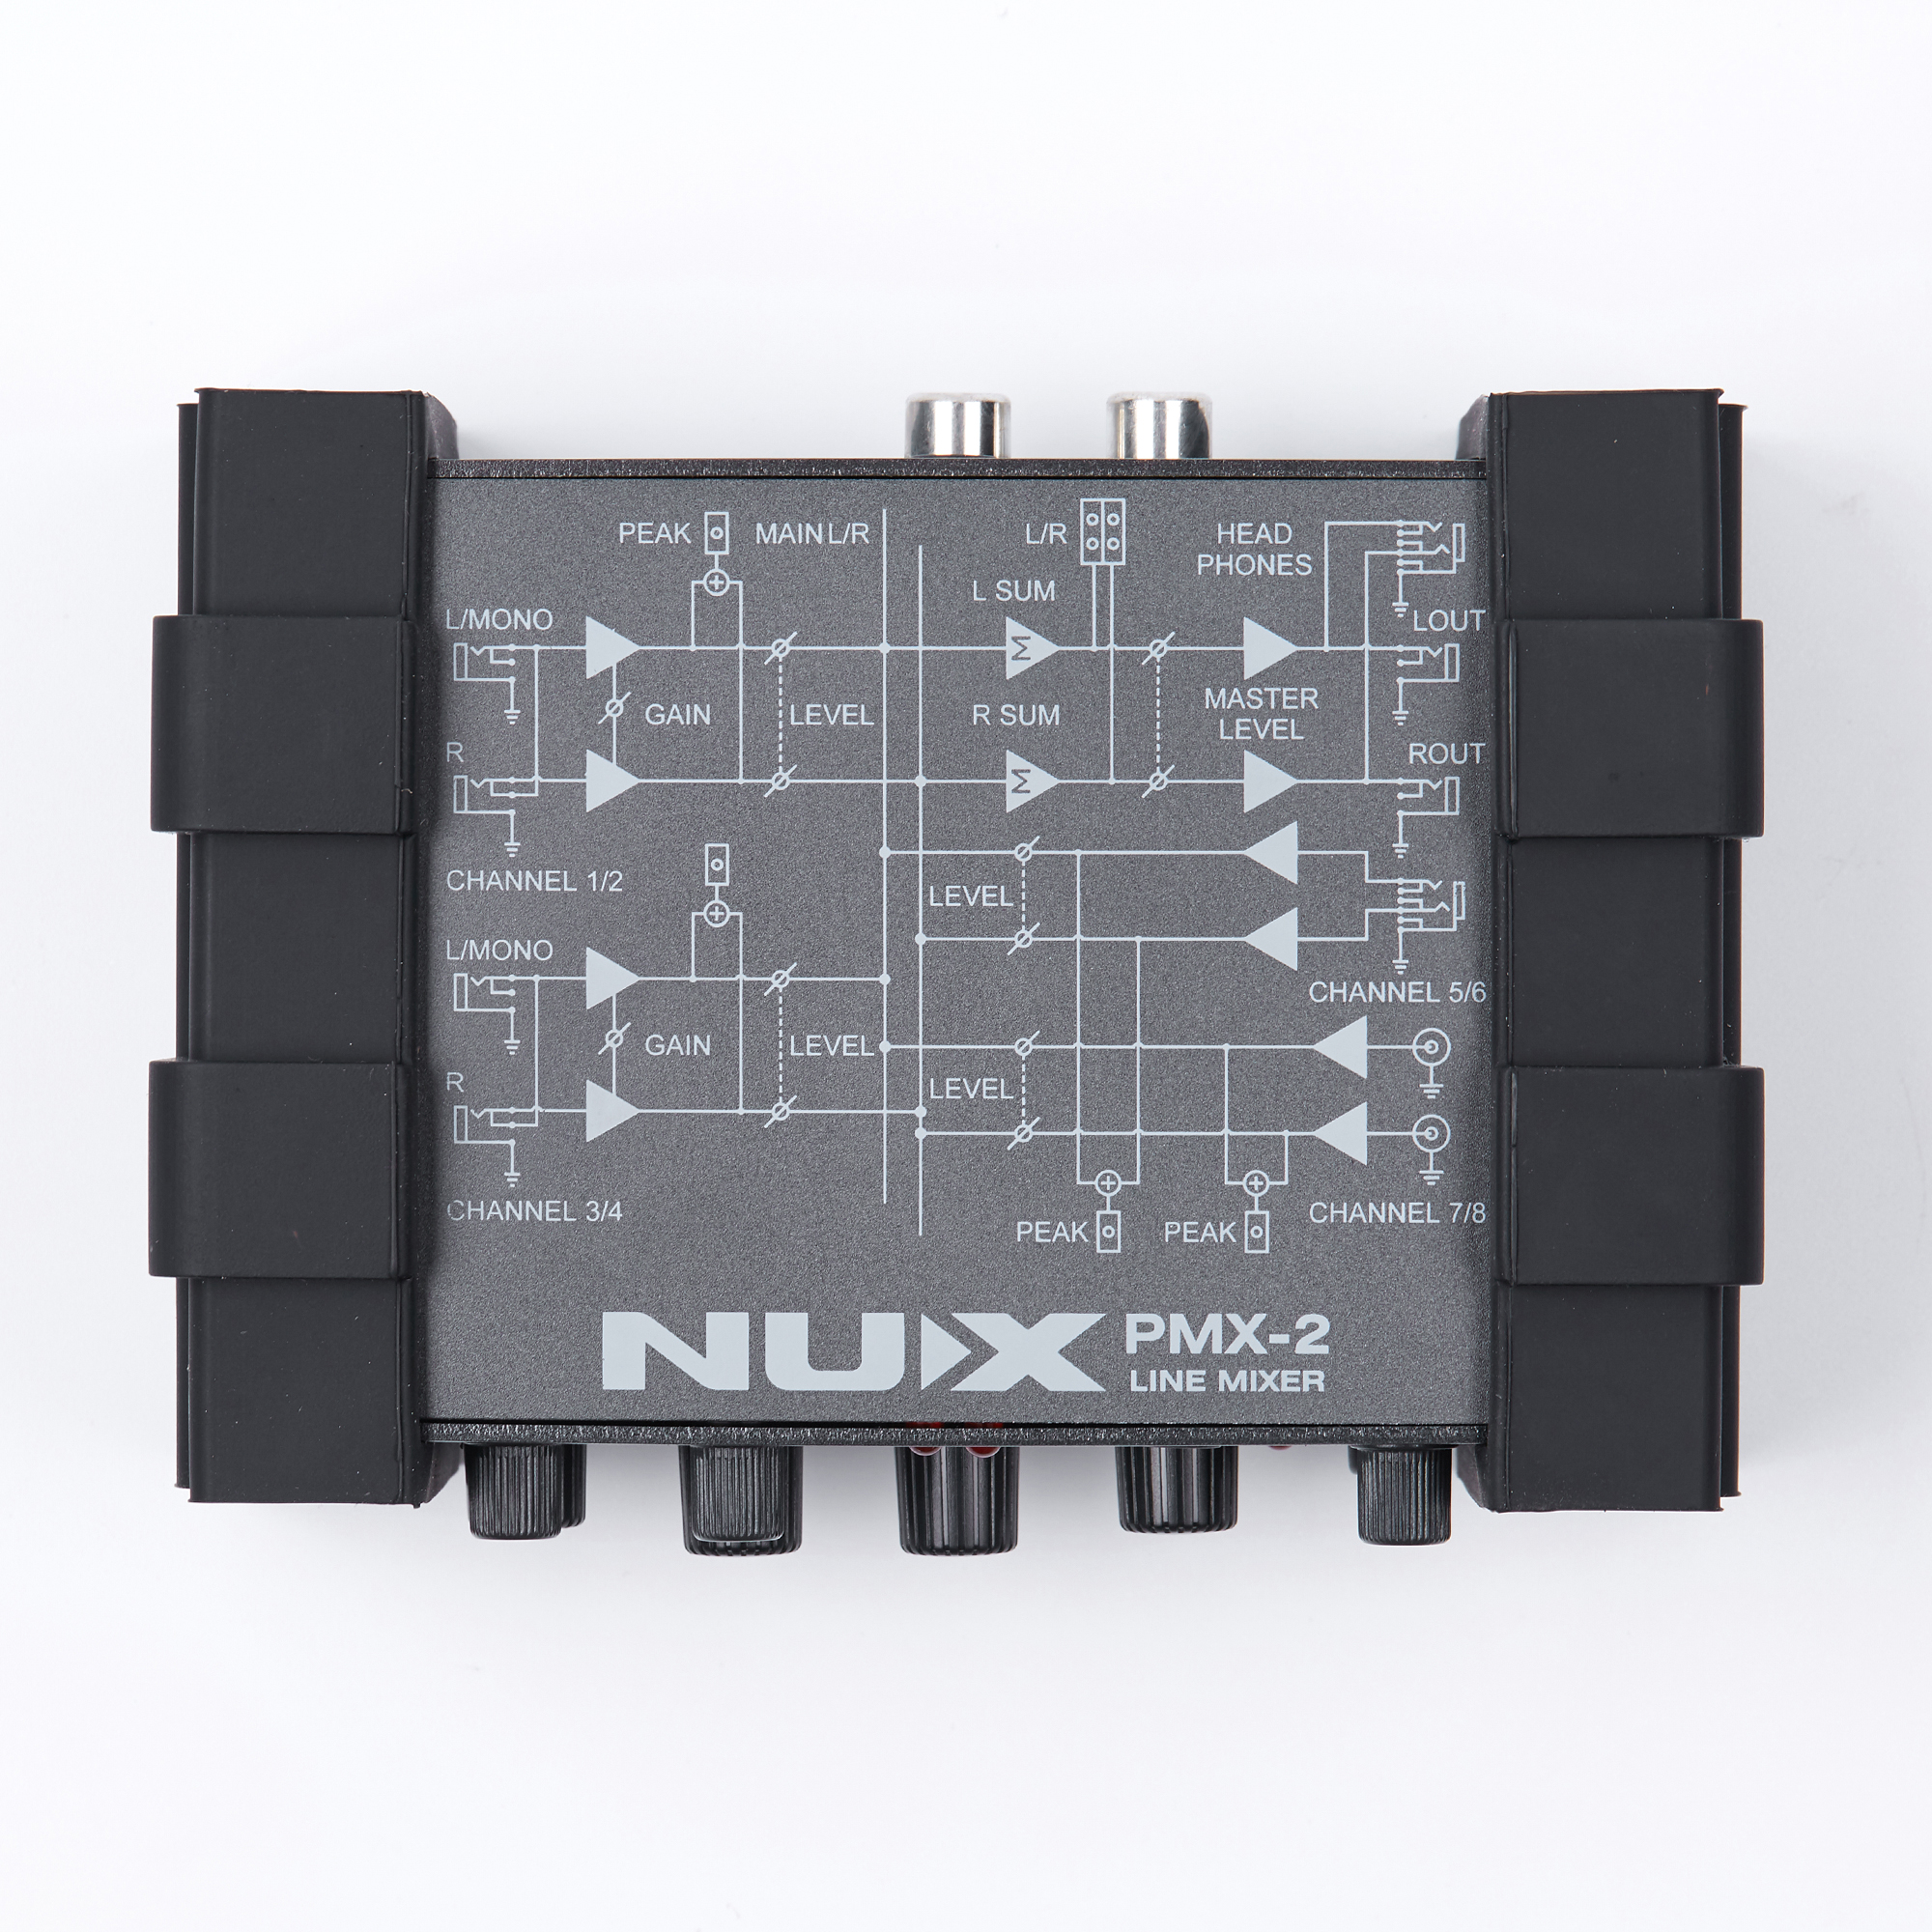 Gain Control 8 Inputs and 2 Outputs NUX PMX-2 Multi-Channel Mini Mixer 30 Musical Instruments Accessories for Guitar Bass Player auo p301 16 p301 16